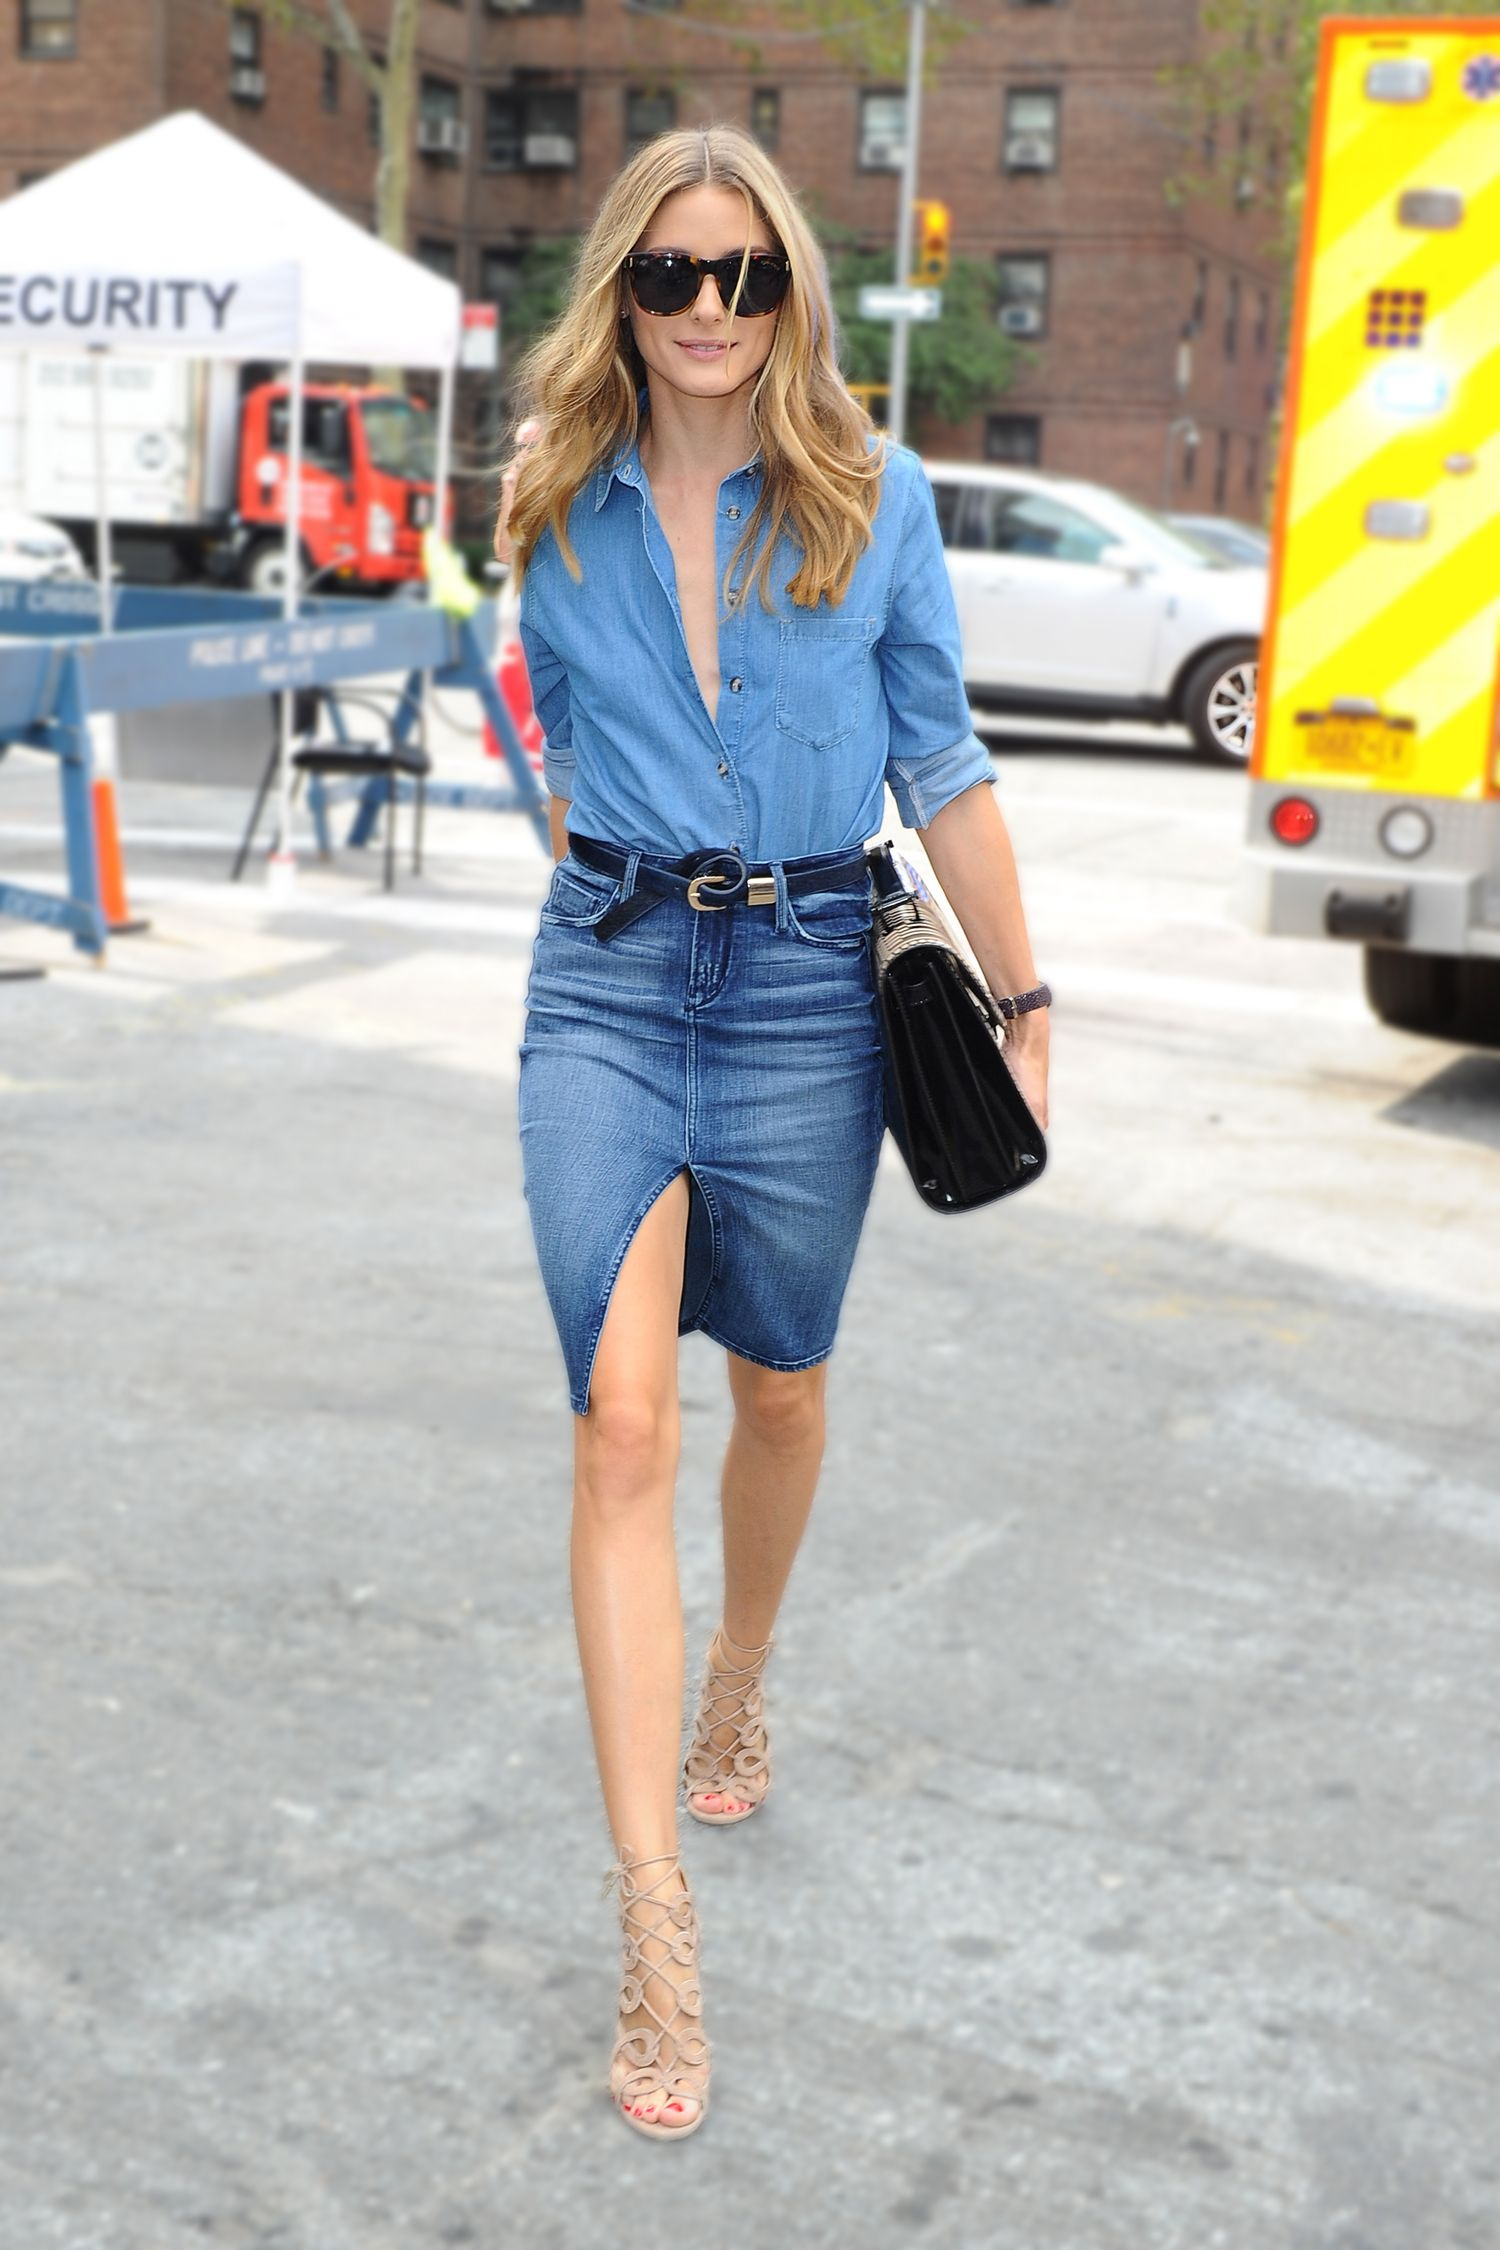 <p>Unbuttoned chambray shirt? Check. Denim skirt with center front split? Check. Fashionably knotted belt? Check. Nude sandals? Check. Probably the sexiest double denim look we've <em>ever</em> seen? Check.</p>